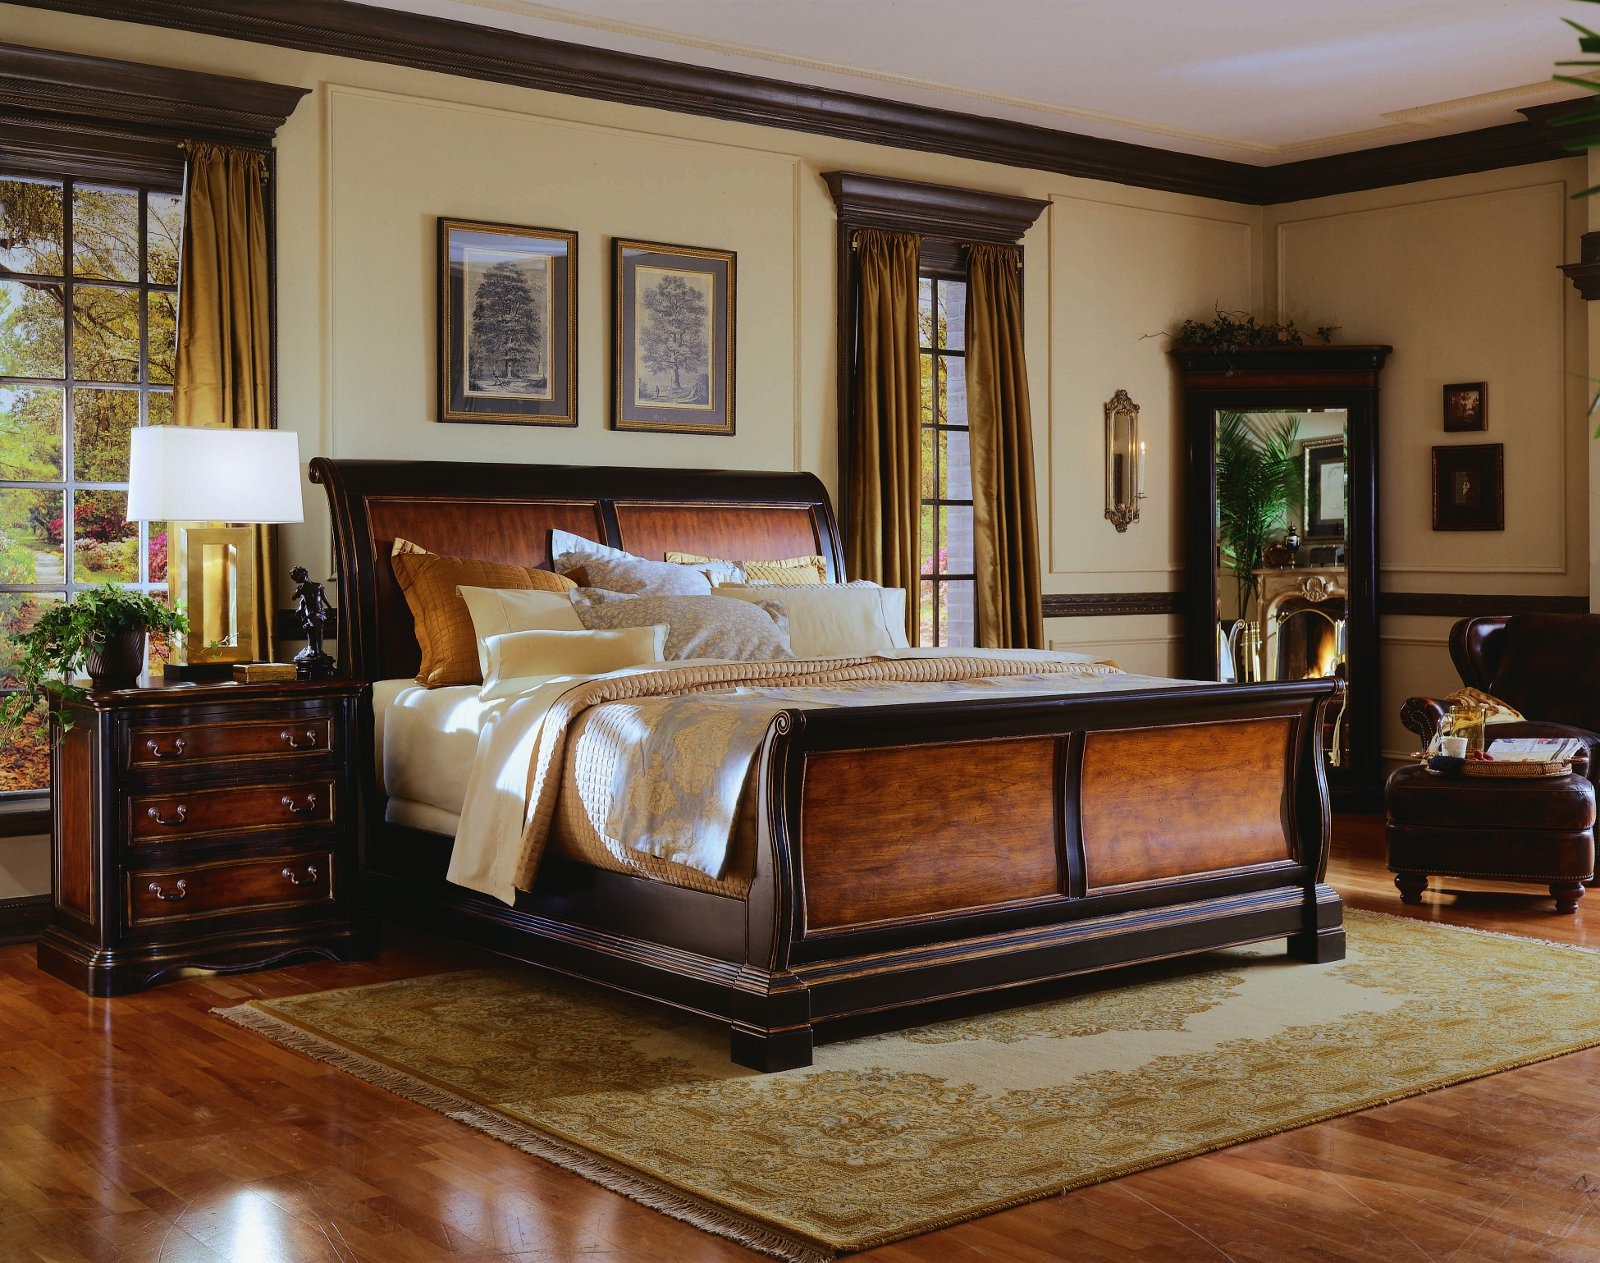 Care of Your Mahogany Bedroom Furniture